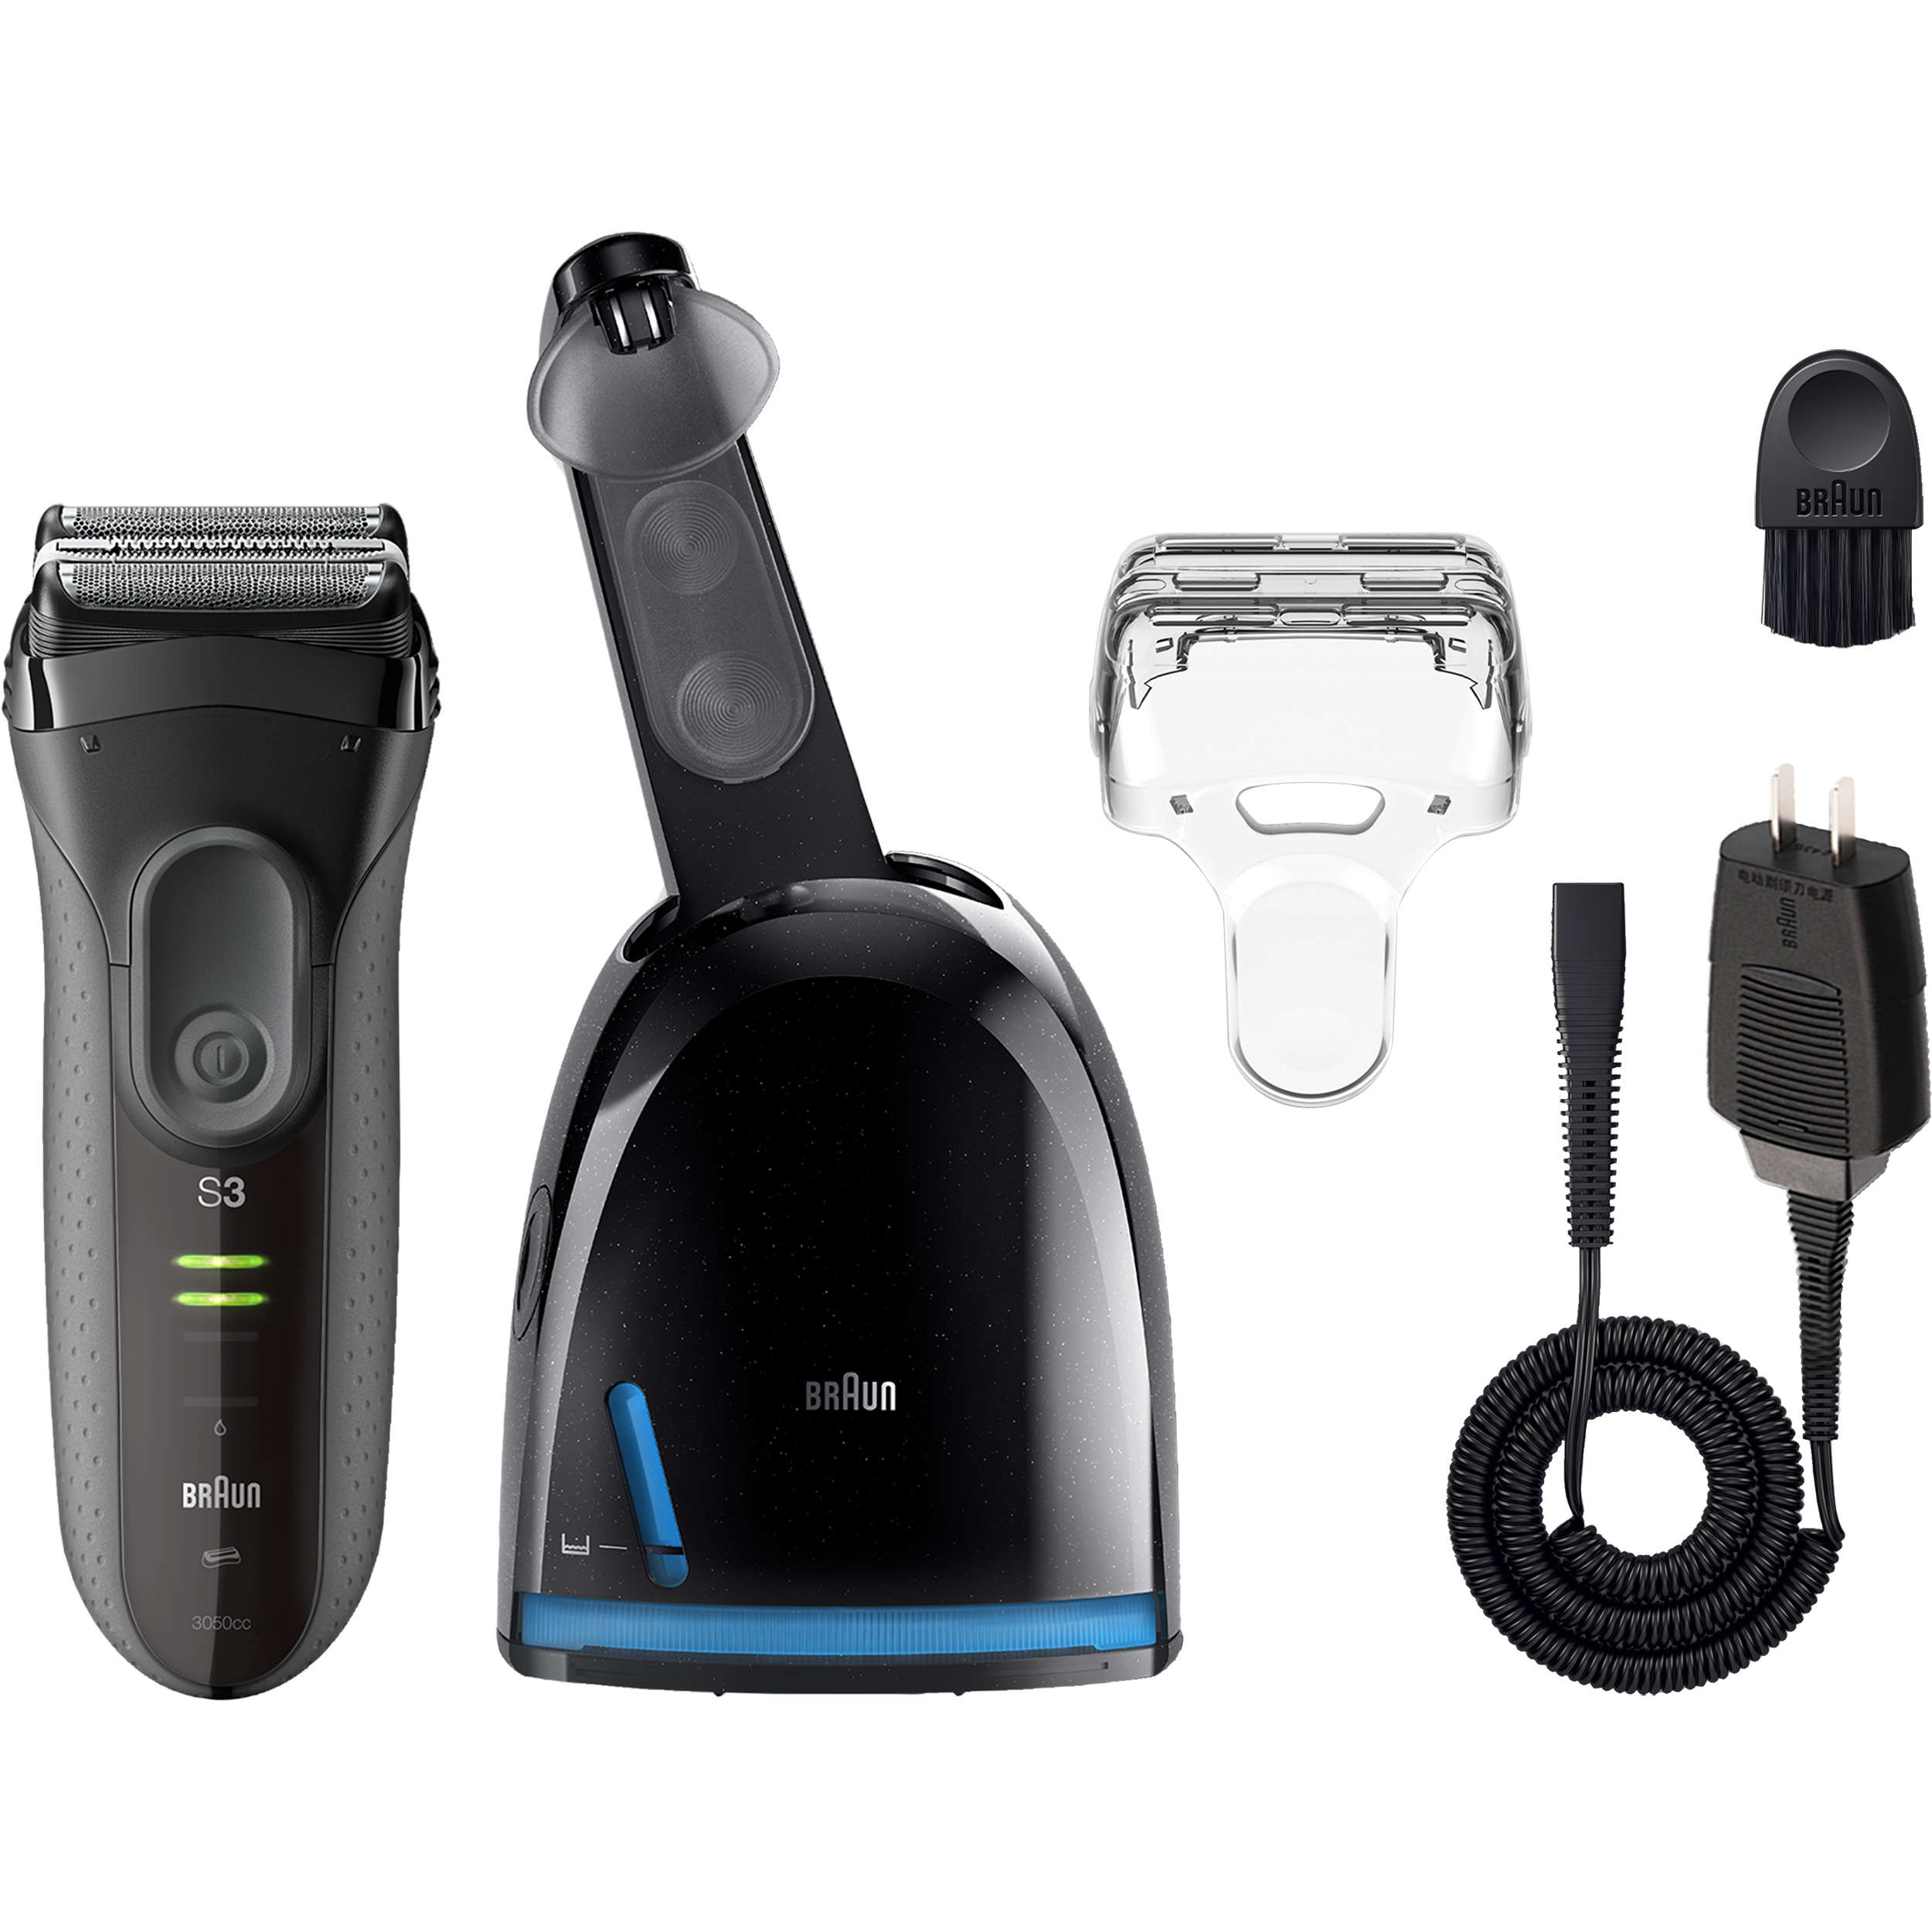 Braun Series 3 ProSkin 3050cc Electric Shaver for Men - 5 Pc